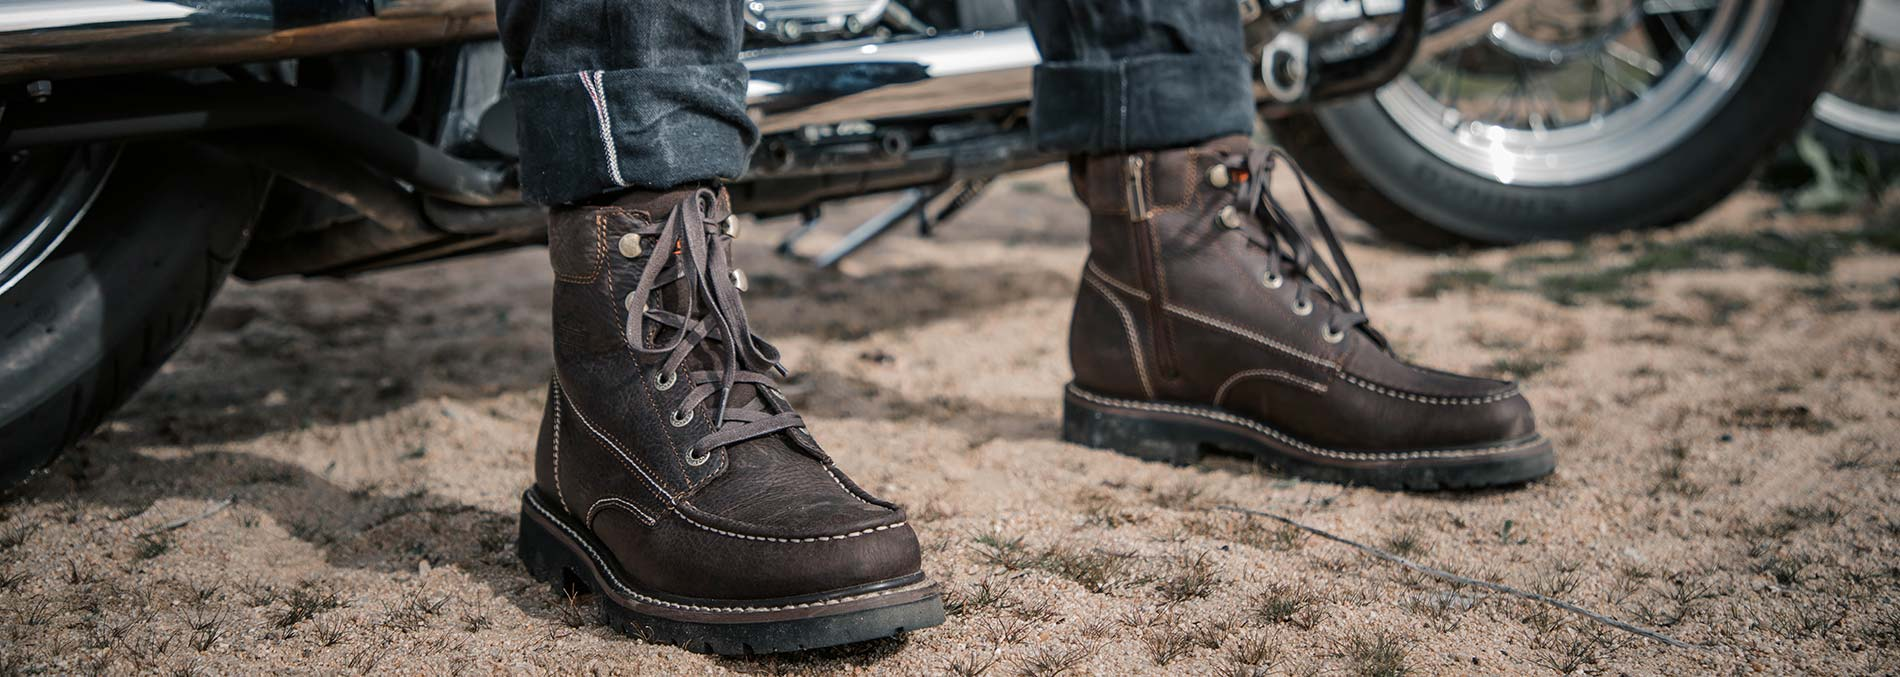 7373fd98070 Casual   Motorcycle Boots   Shoes